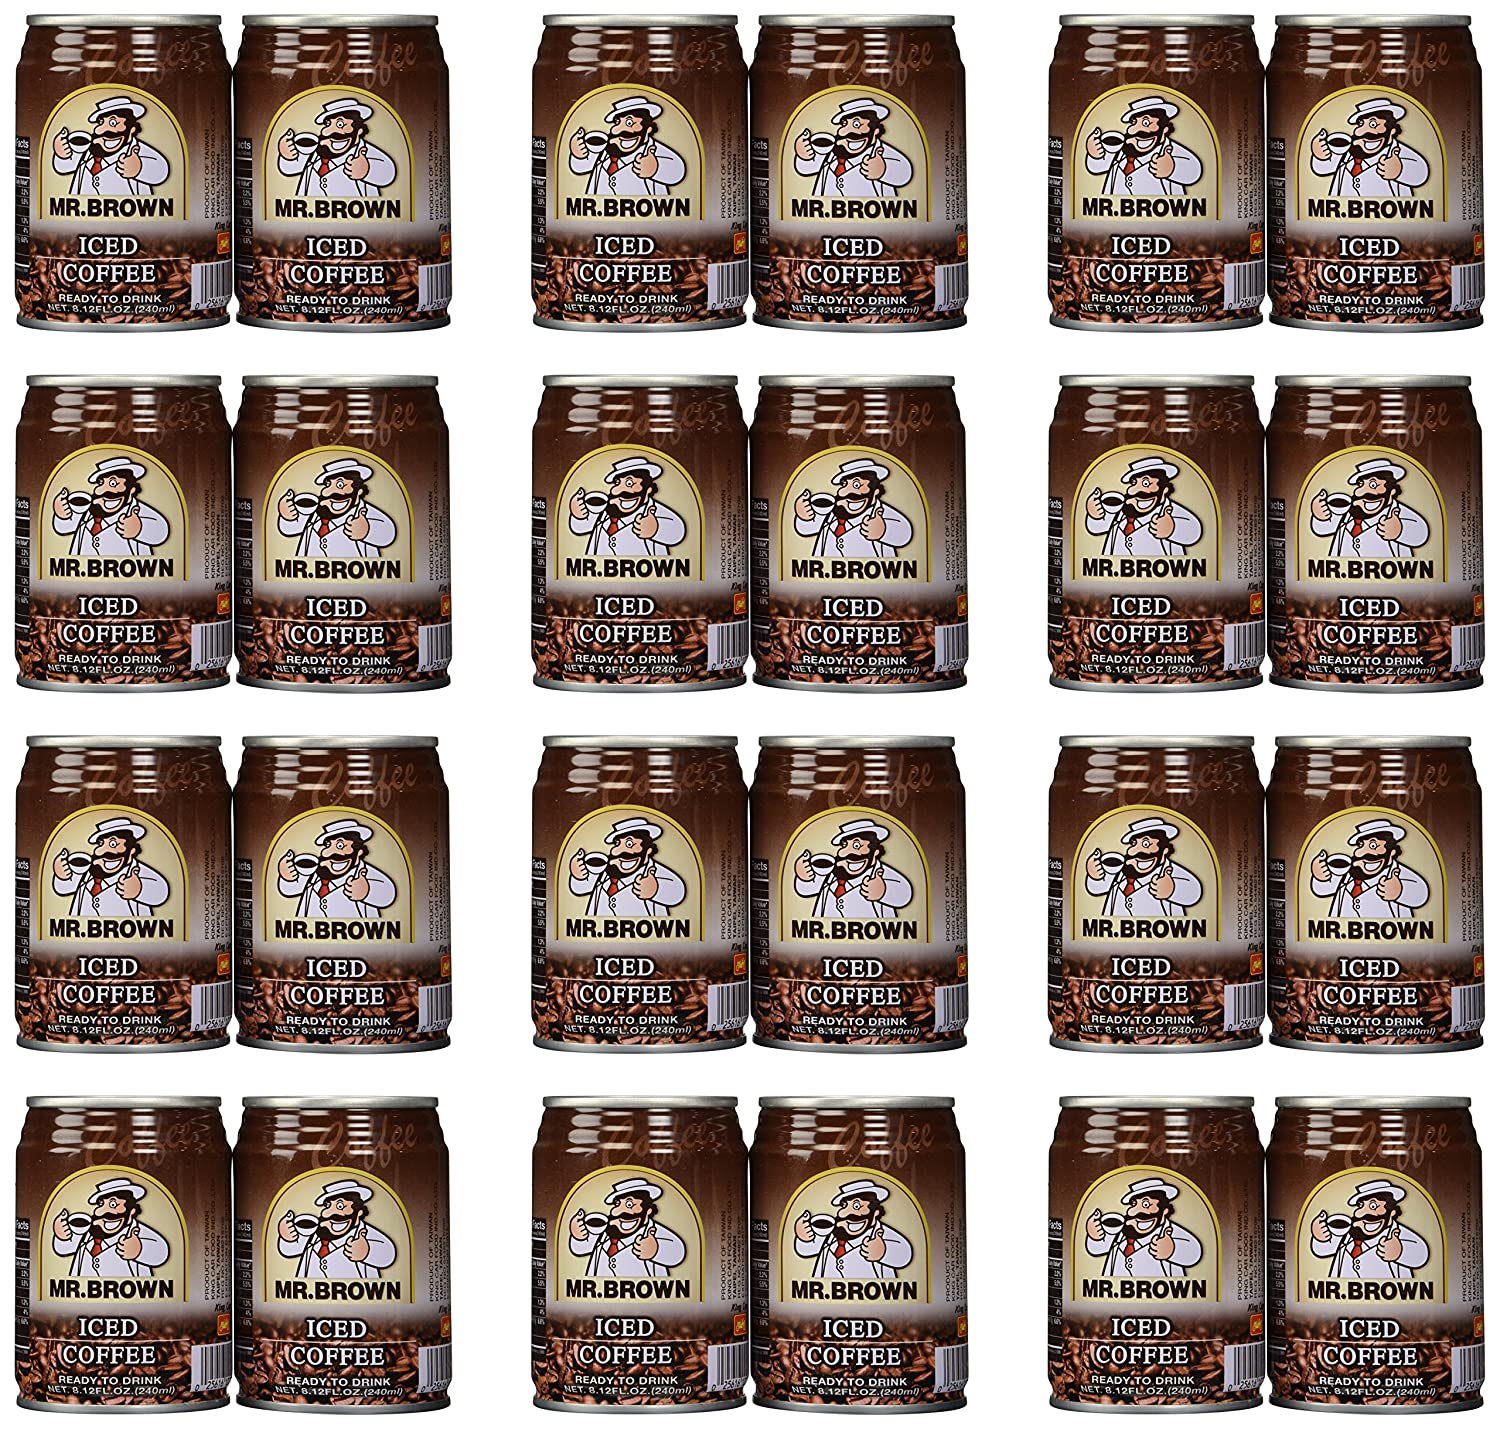 Mr. Brown Iced Coffee 8.12-Ounce Pack New Free Shipping of Max 77% OFF 24